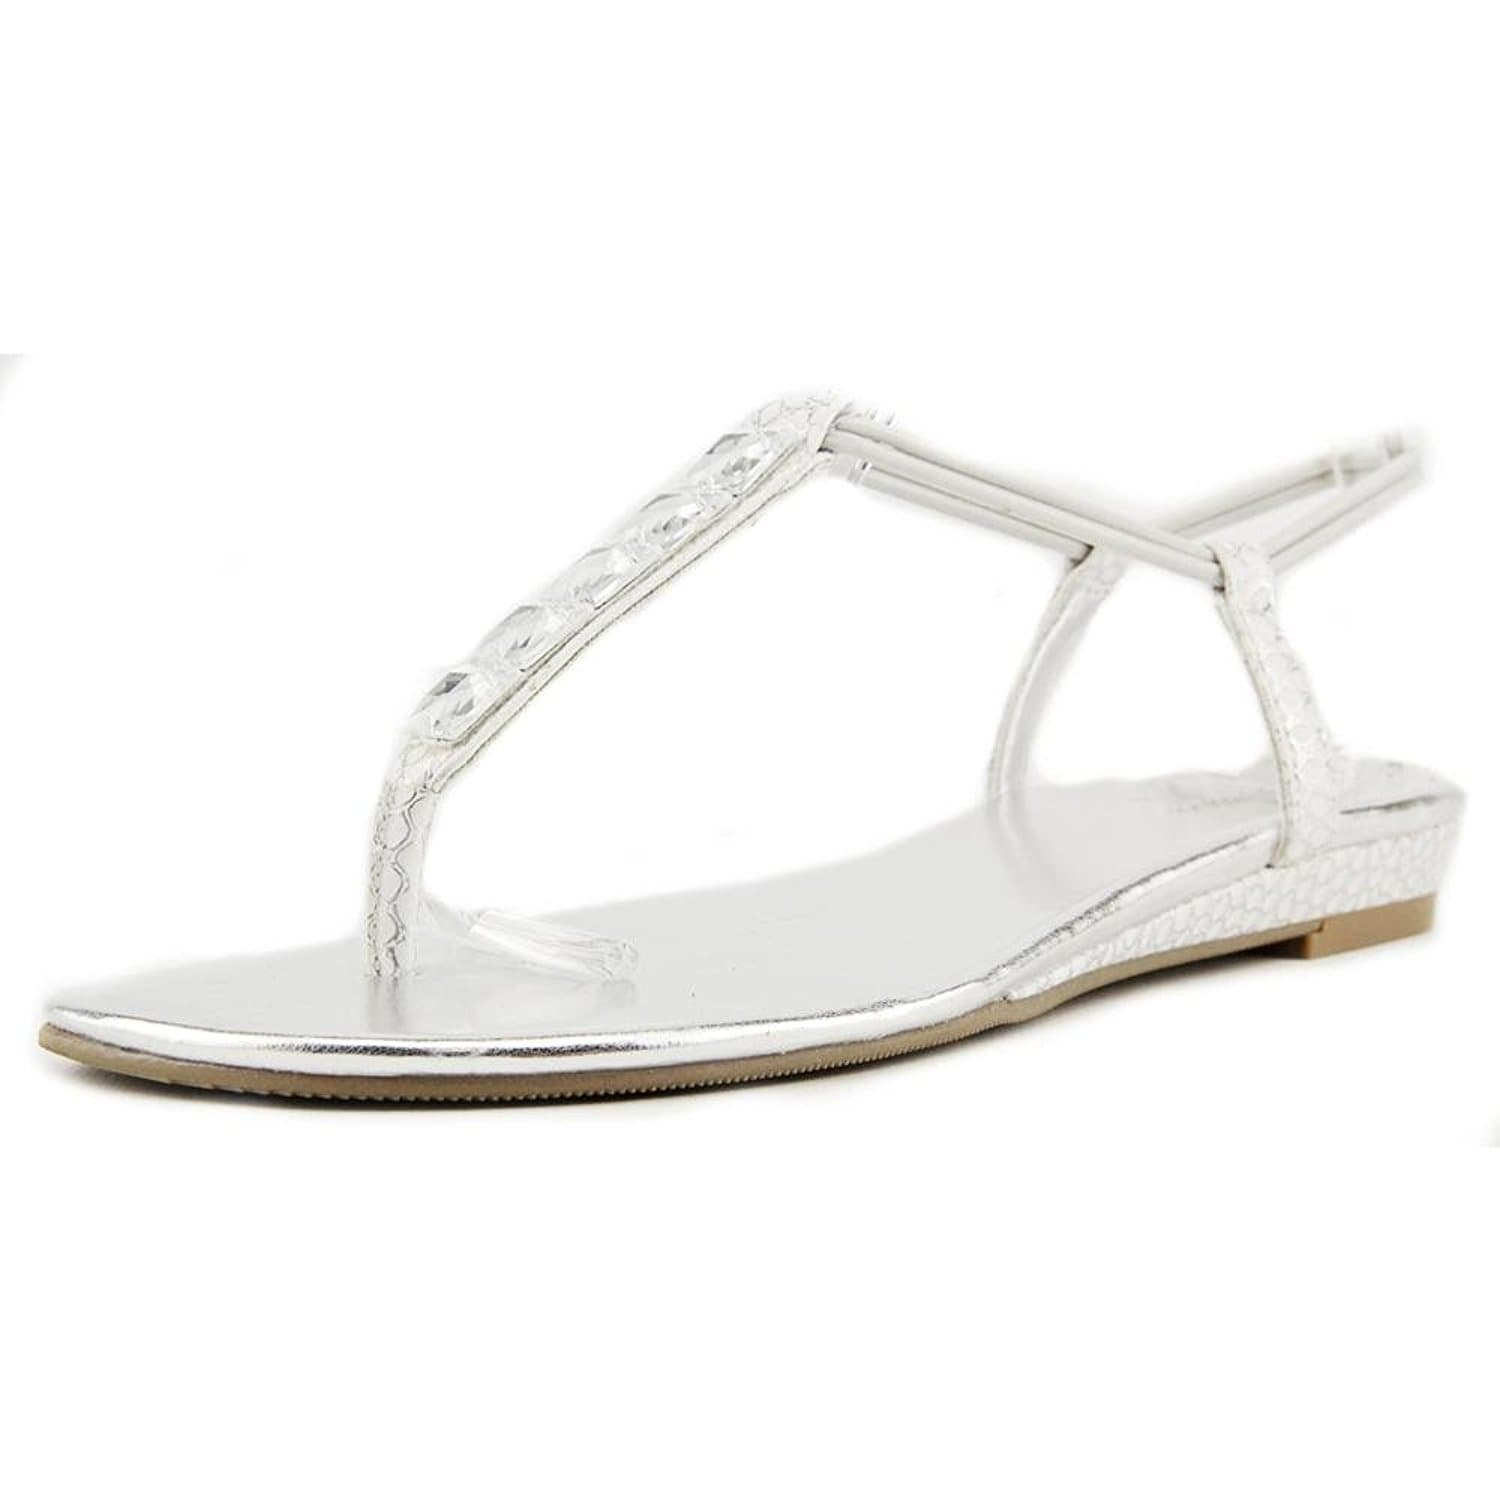 Style Co Womens ELIAHH Open Toe Casual Slide Sandals Pewter Size 95